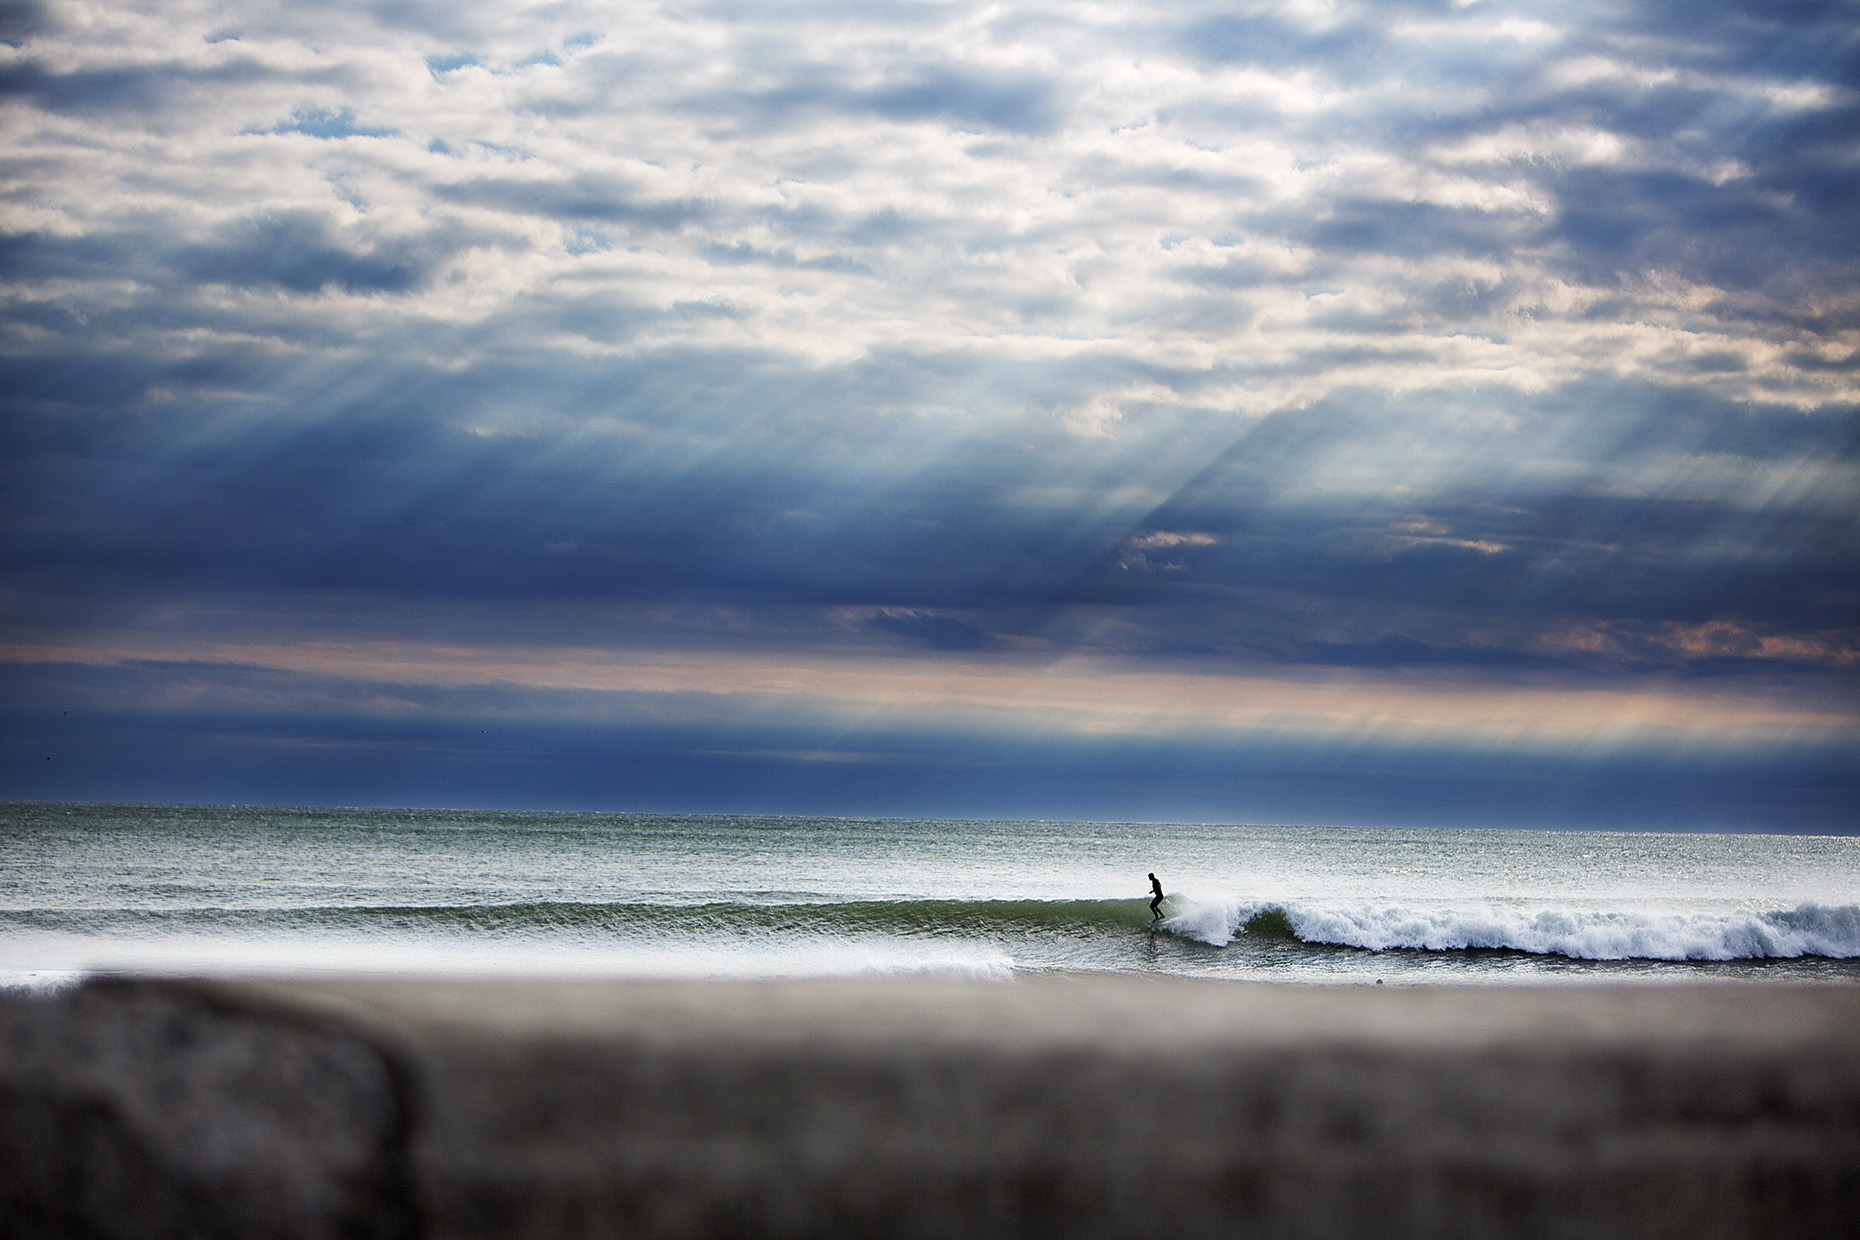 Winter Surfing in New Hampshire by Boston based commercial sports photographer Brian Nevins